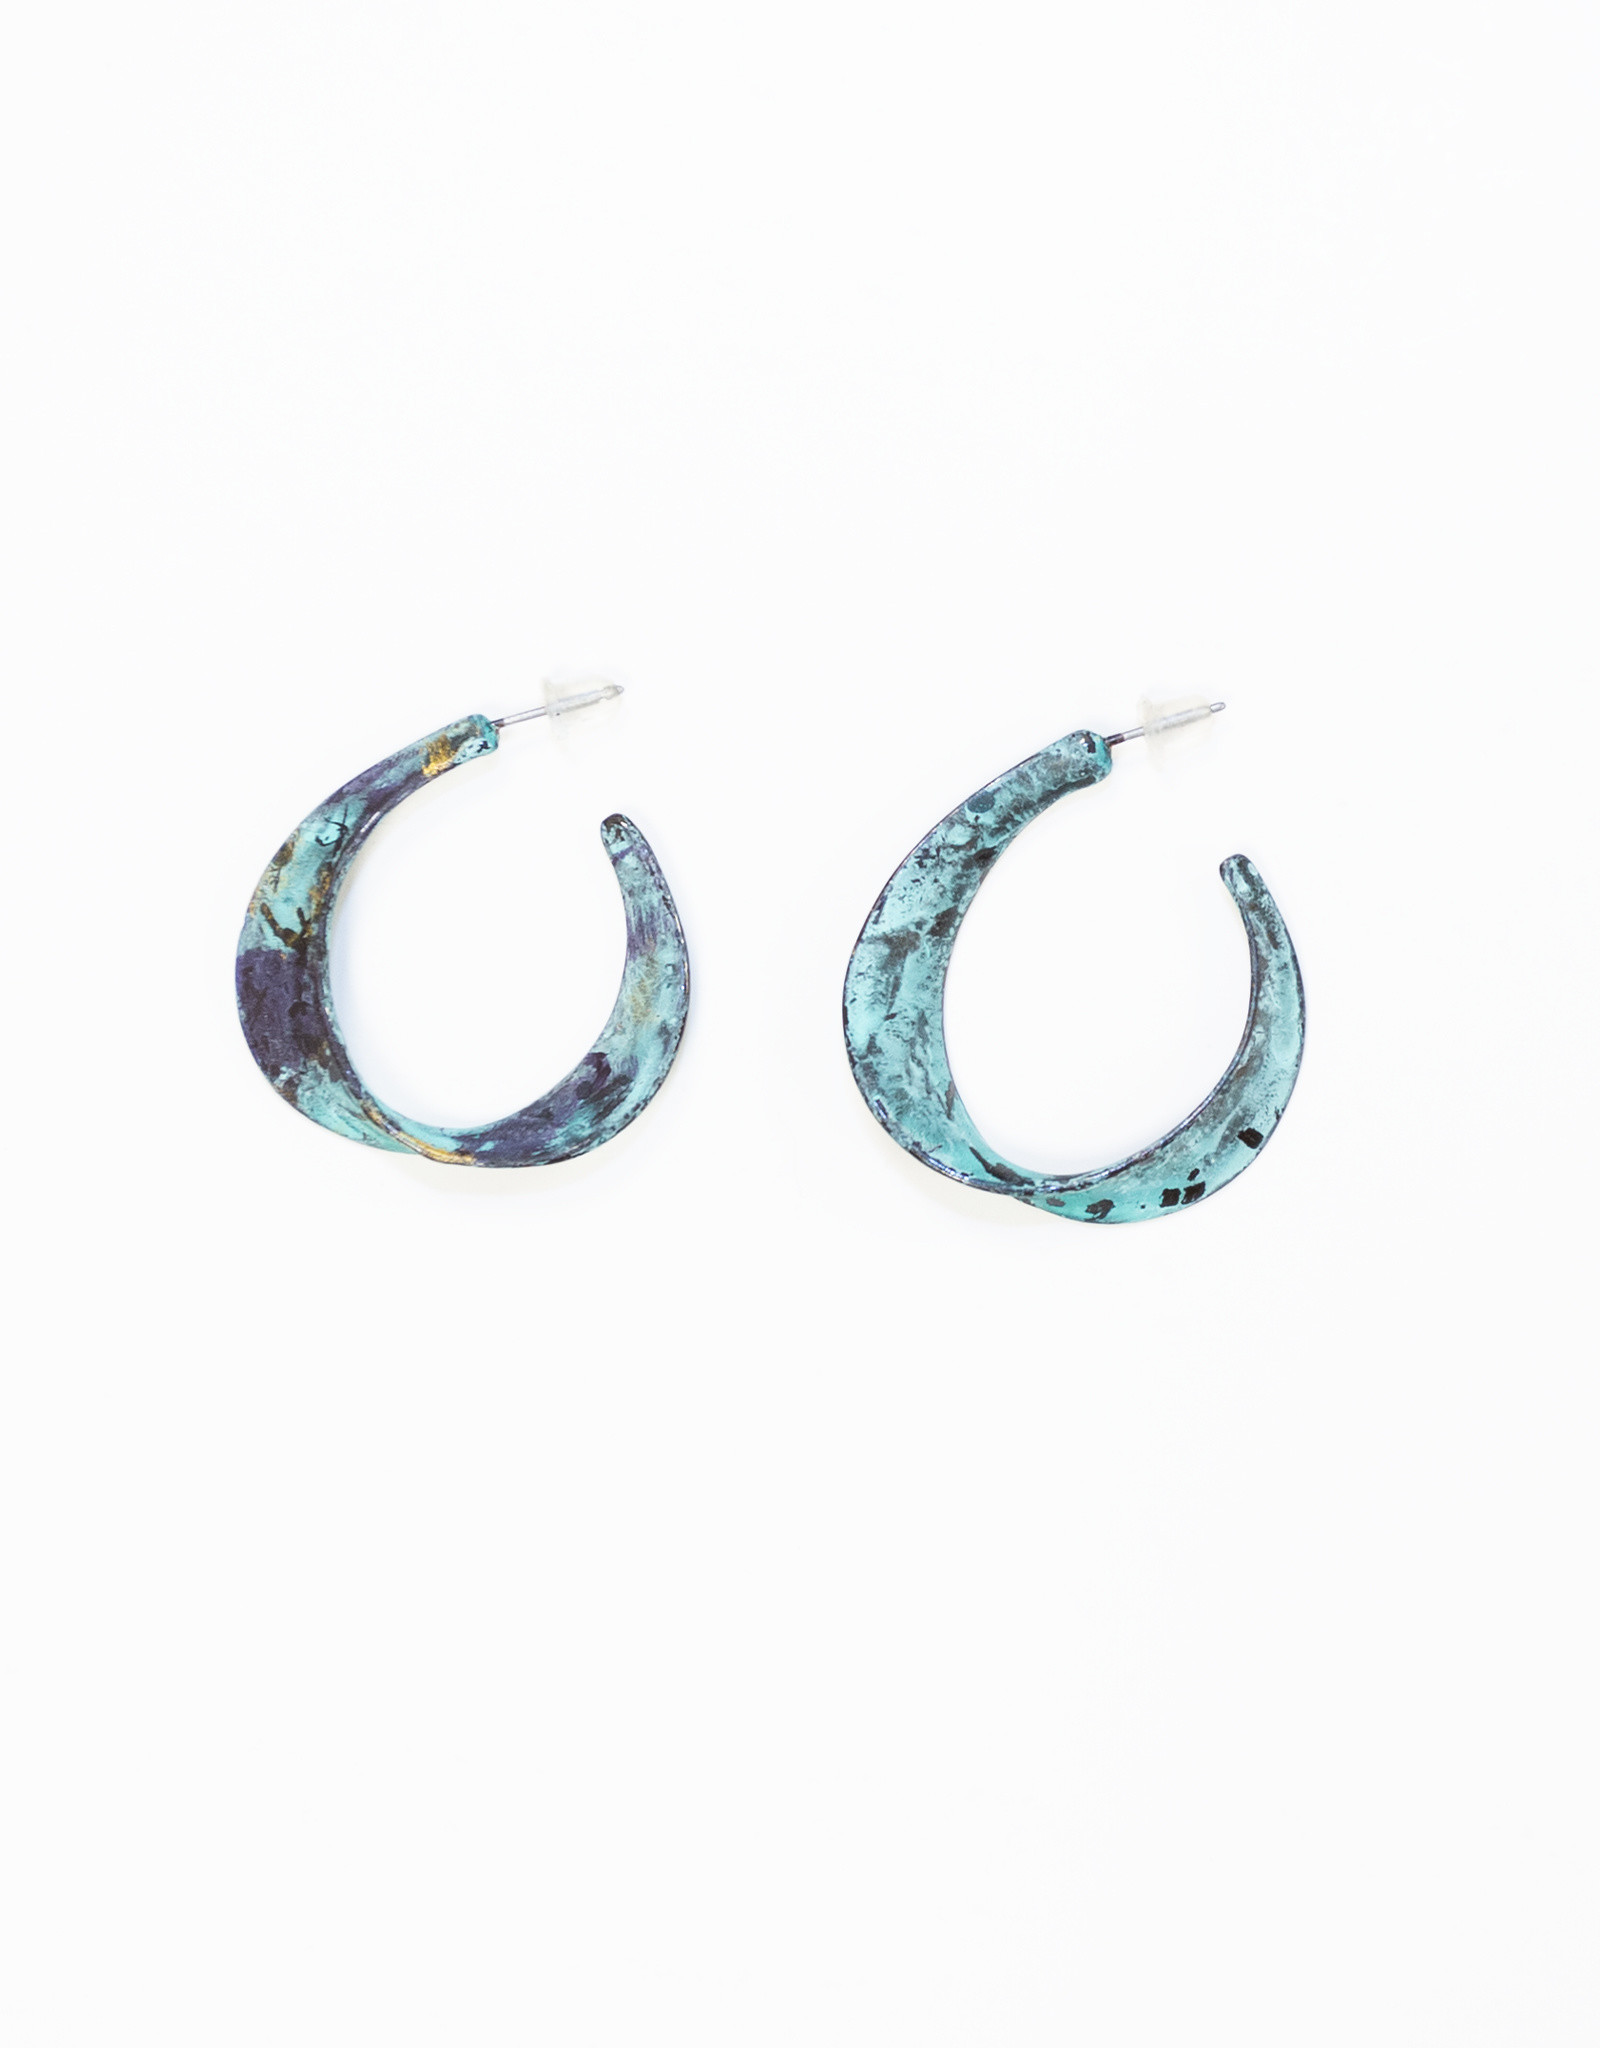 Twisted Loop Earrings